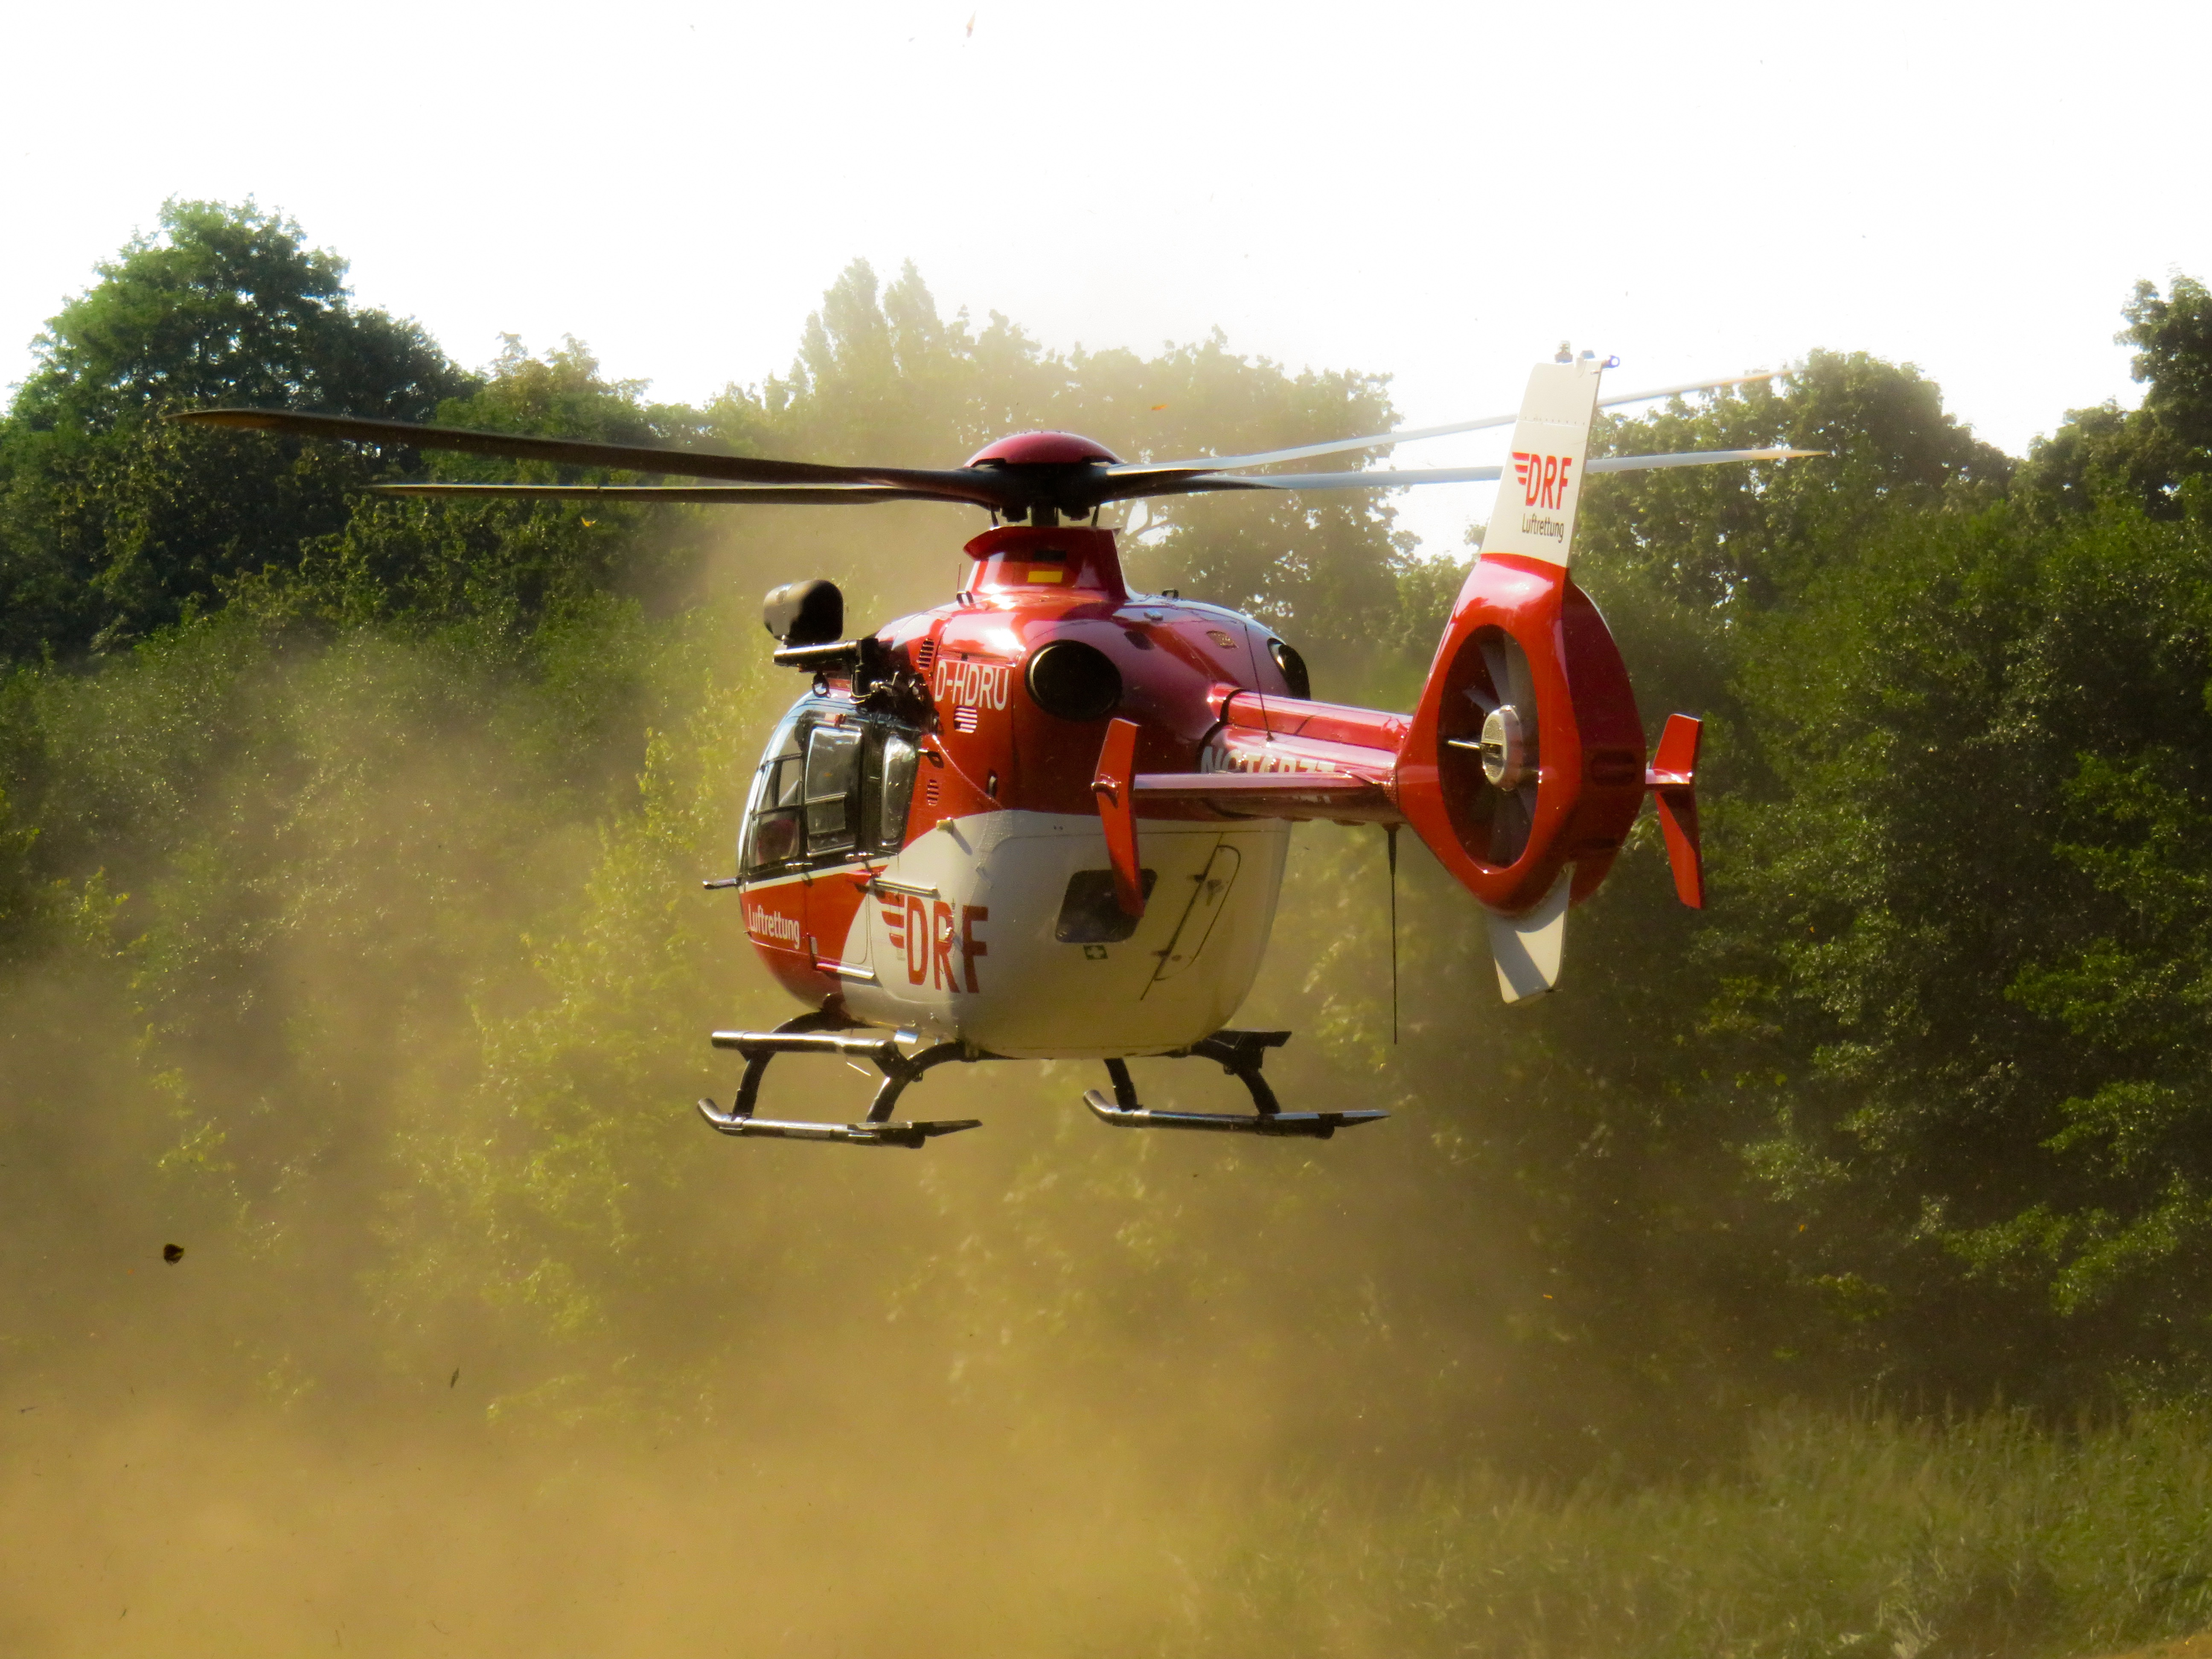 Helicopter Flight, Ride, Transport, Rich, Travel, HQ Photo